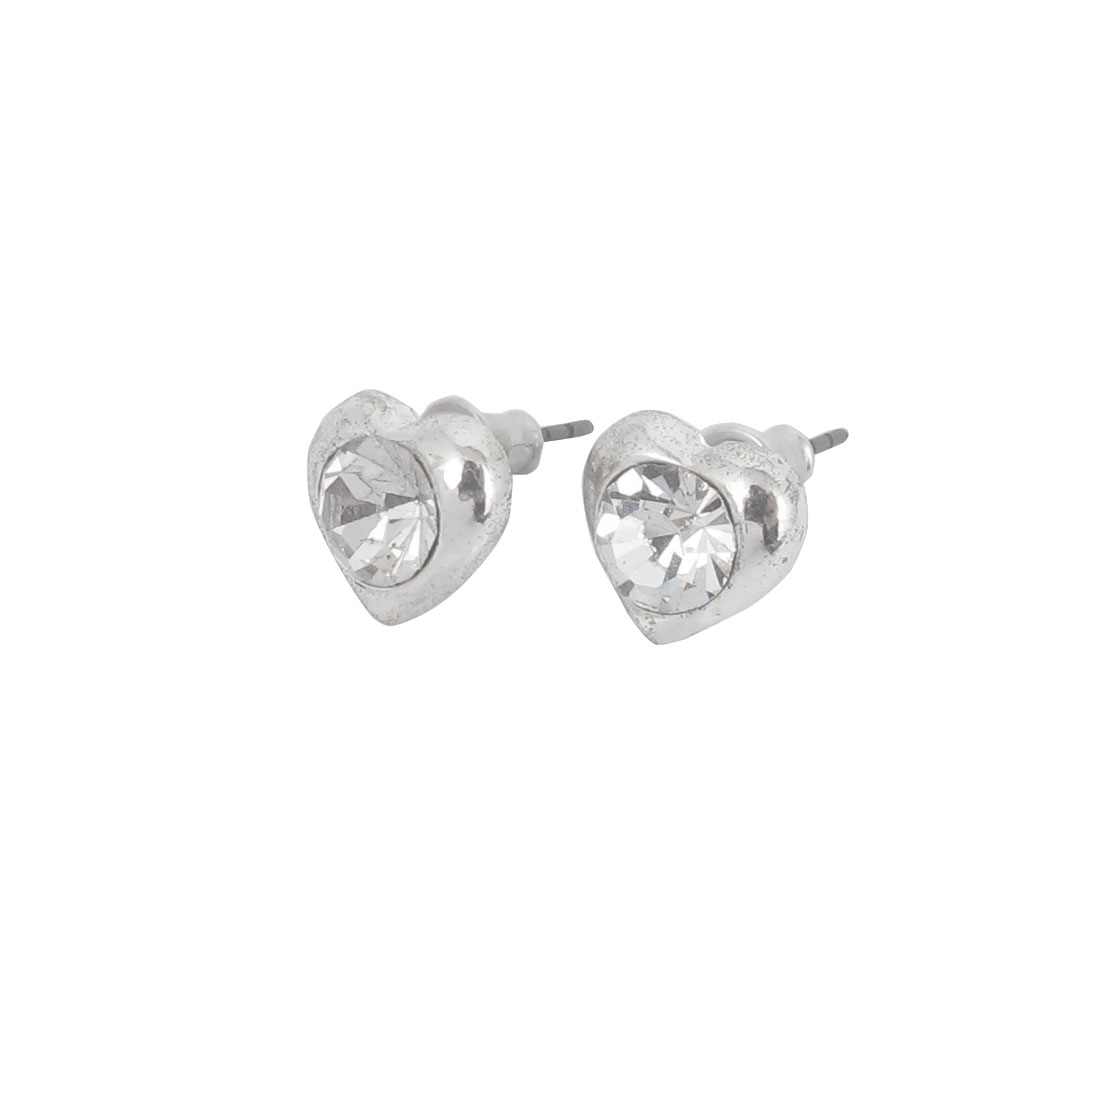 1.7CM Length Silver Tone Faux Crystal Inlaided Heart Shape Pierced Metal Stud Pin Ear Nail Earrings Earbobs Pair for Lady Women